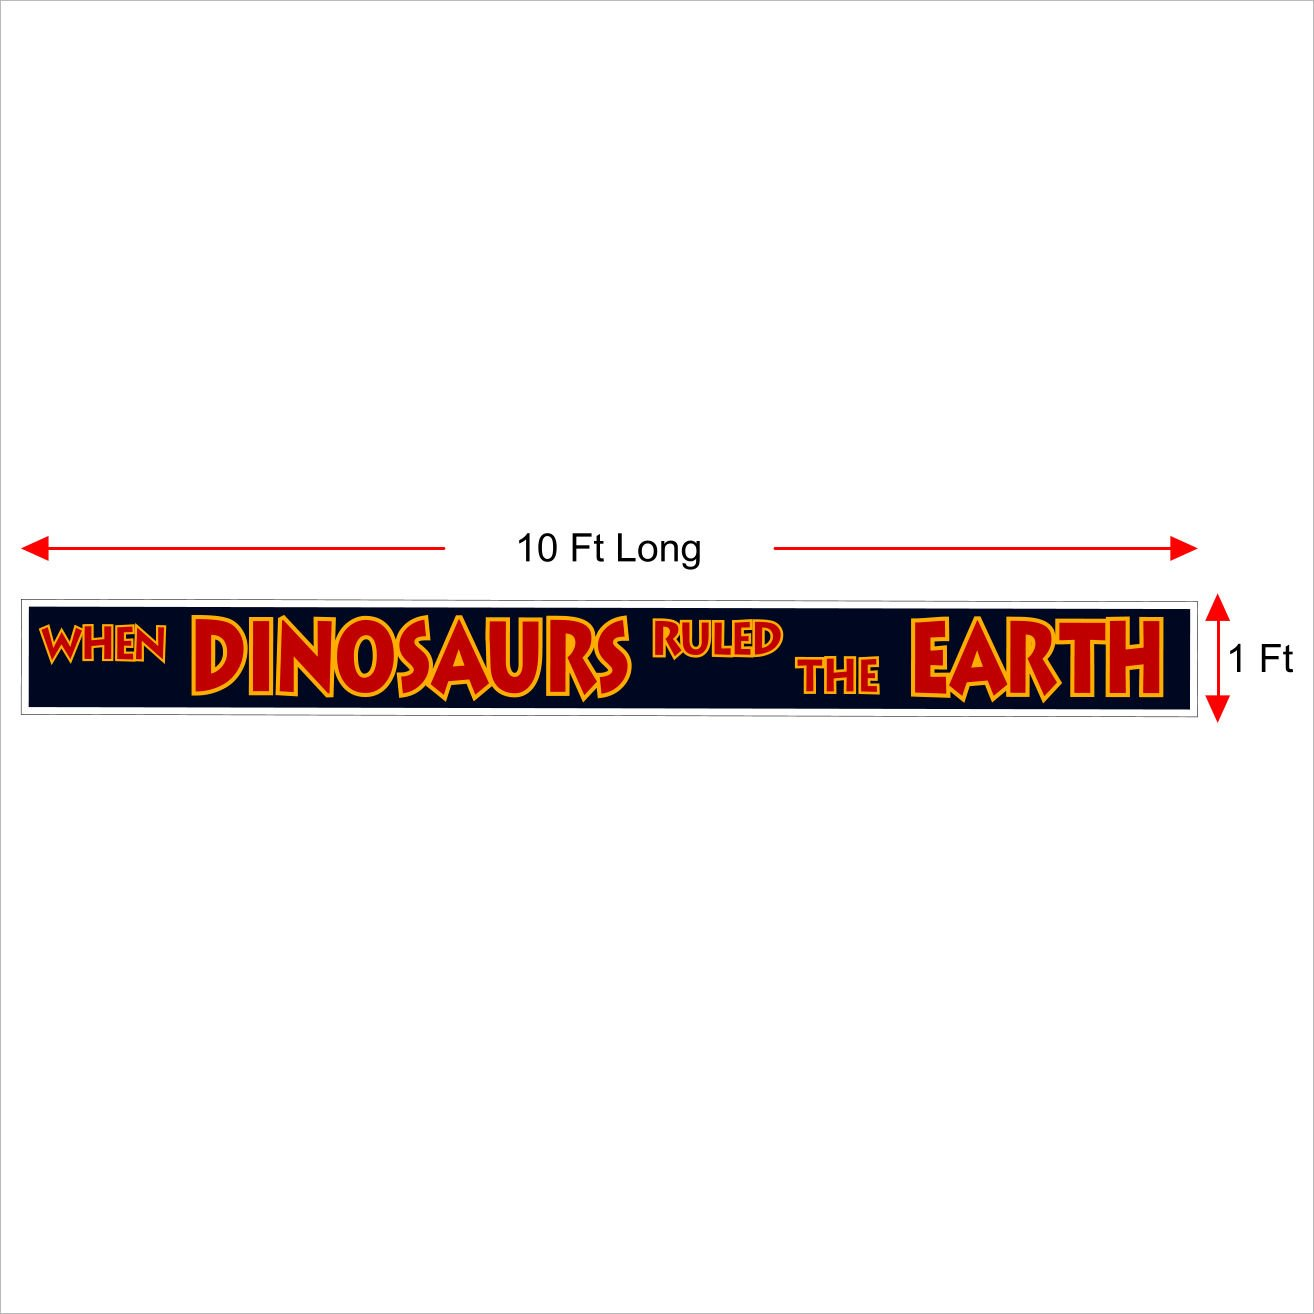 """Jurassic Park Banner Sign Replica Prop - Jurassic Park / World Movie Fan Props -Toys - Games - Shirts. 3 Sizes: 10 Ft , 20 Ft or 30 Ft :""""WHEN Dinosaurs RULED THE EARTH"""""""